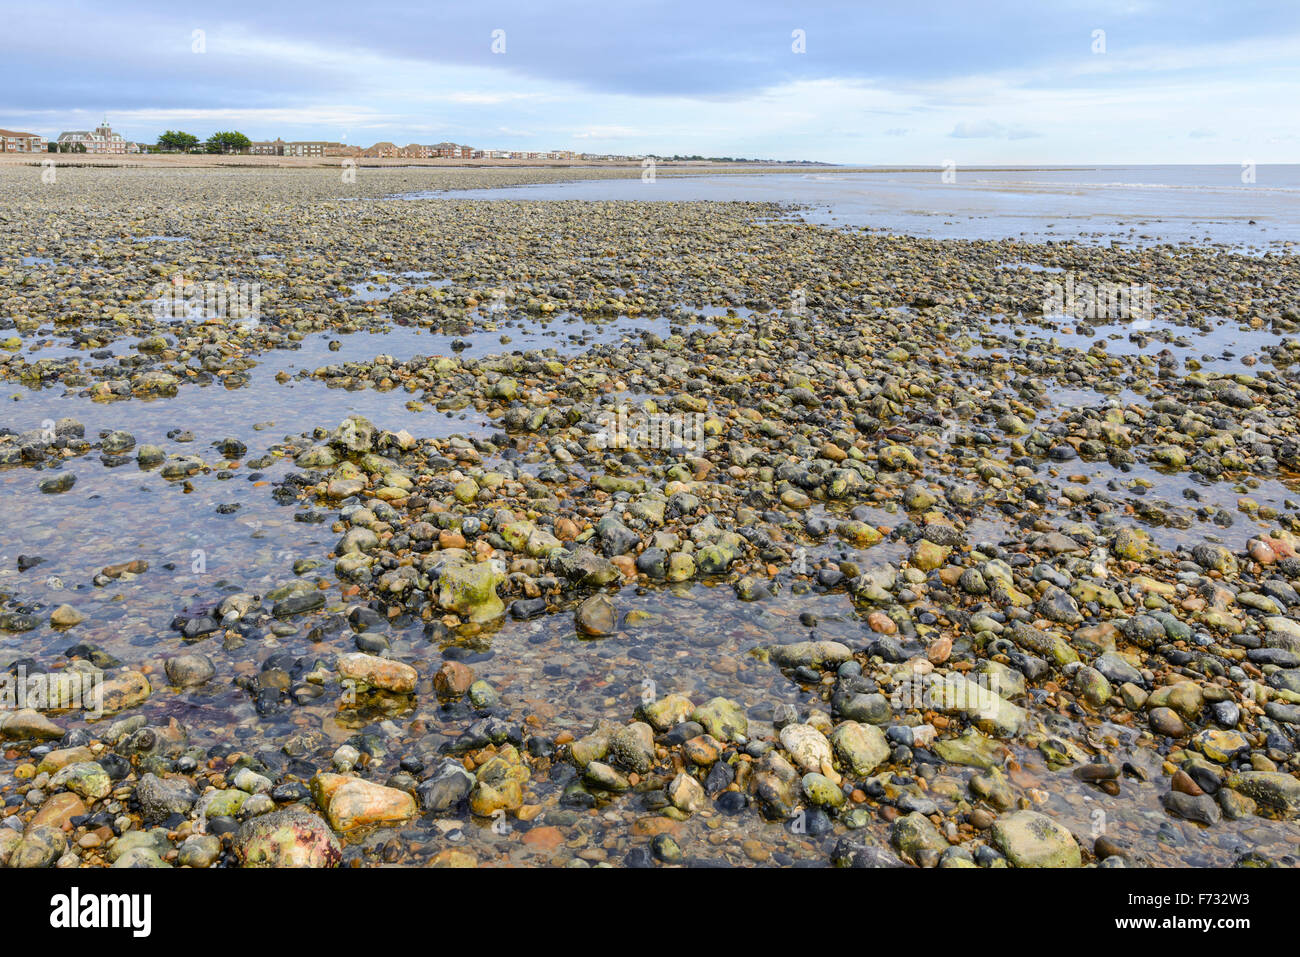 Deserted shingle beach at low tide in the UK. - Stock Image